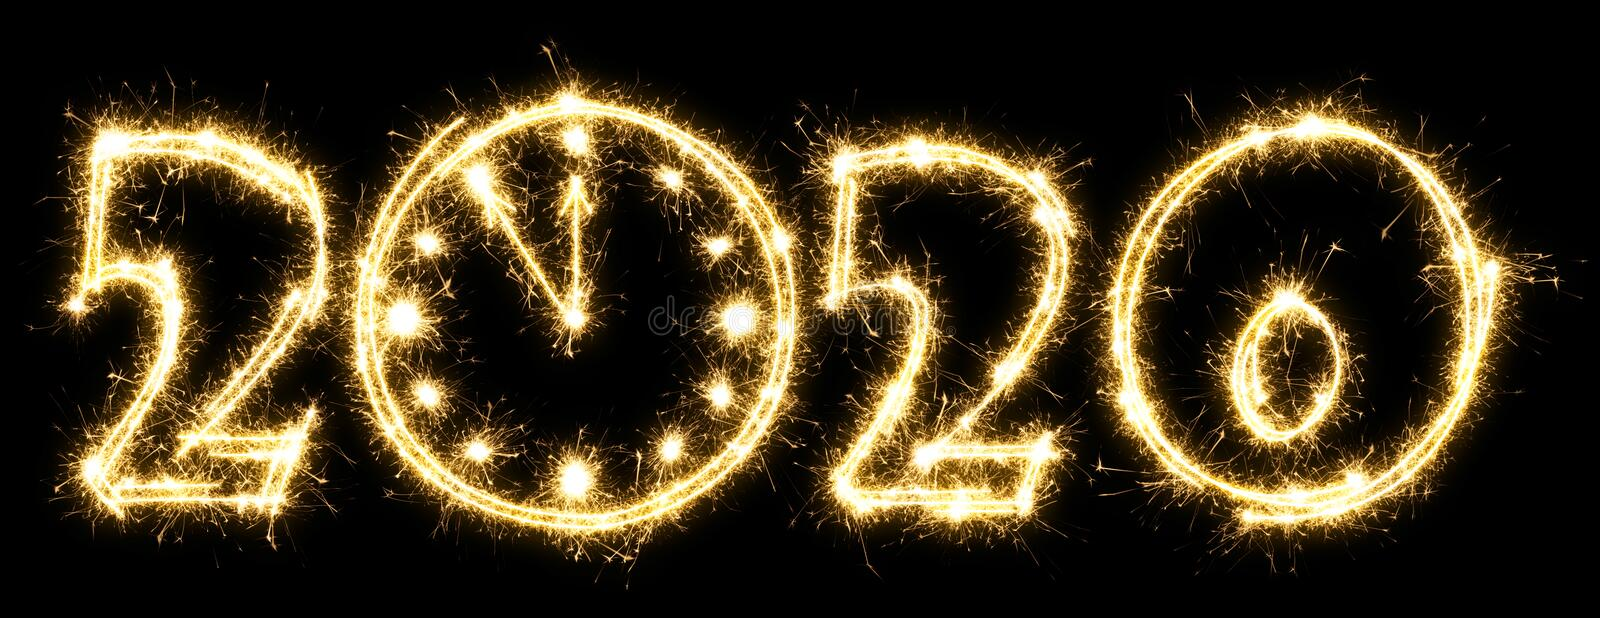 New Year 2020 with clock made by sparkler . Number 2020 and sign written sparkling sparklers . Isolated on a black background . royalty free stock photo